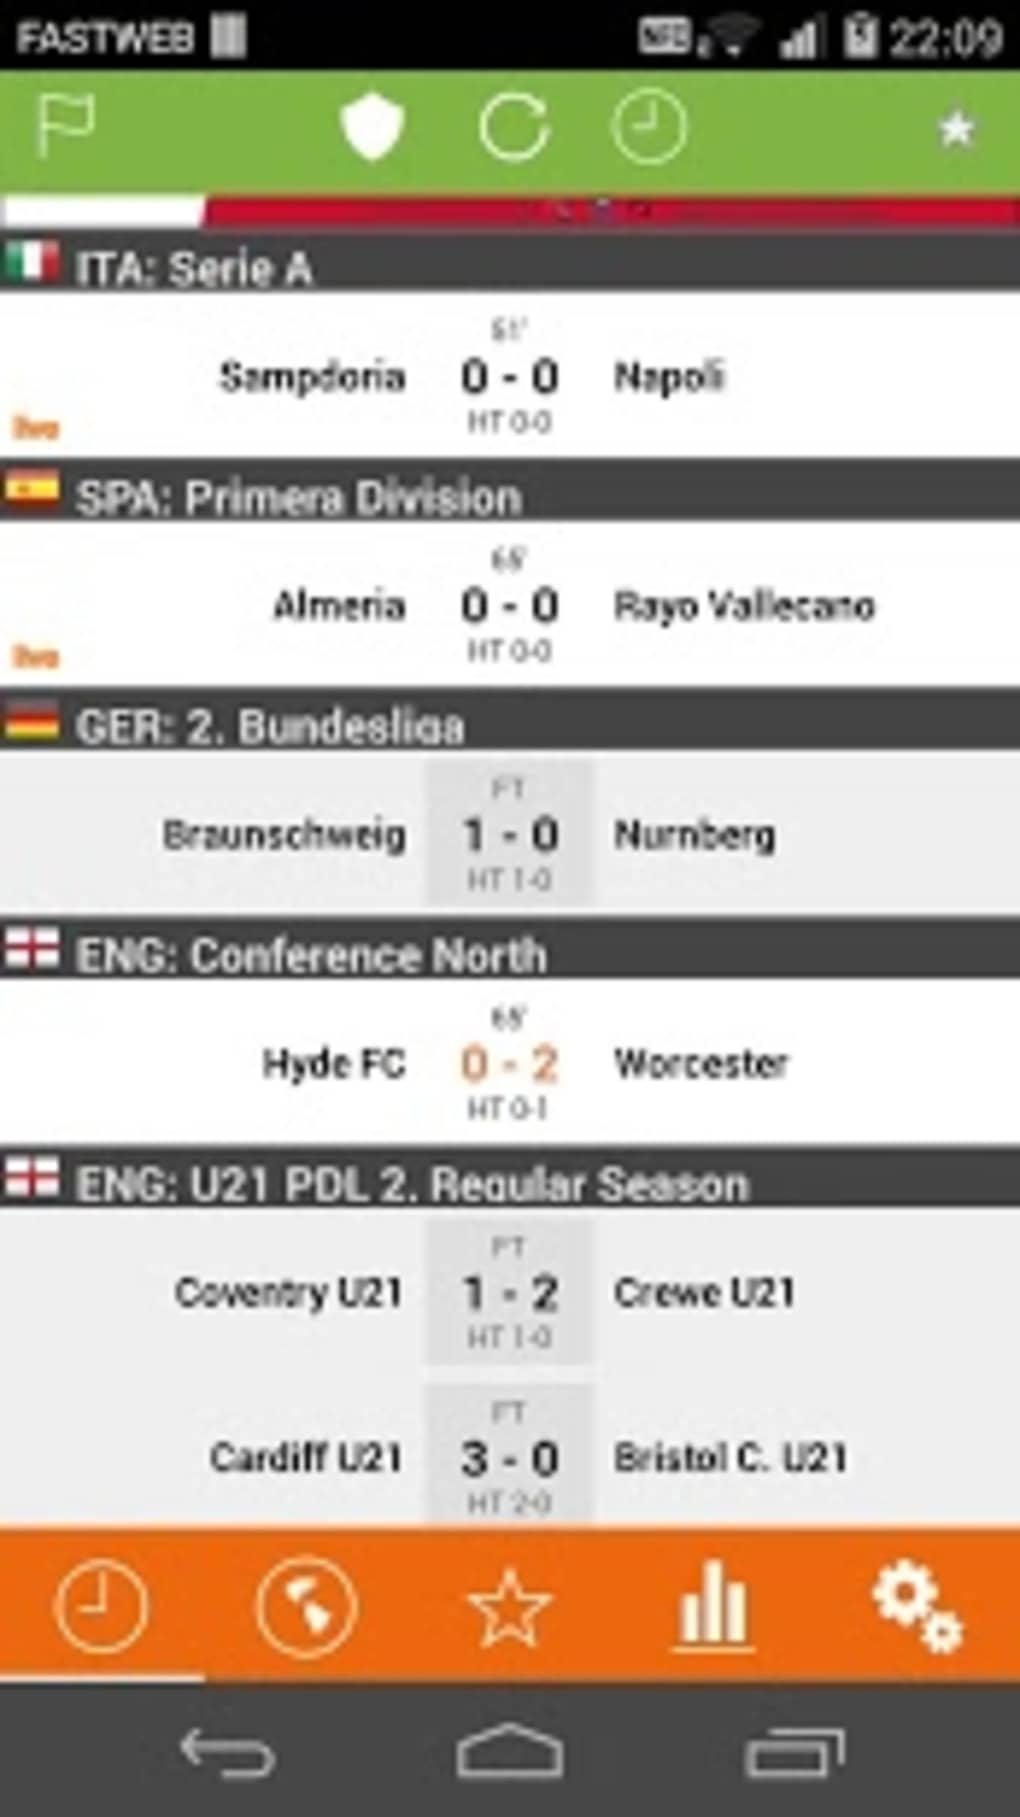 Futbol24 for Android - Download